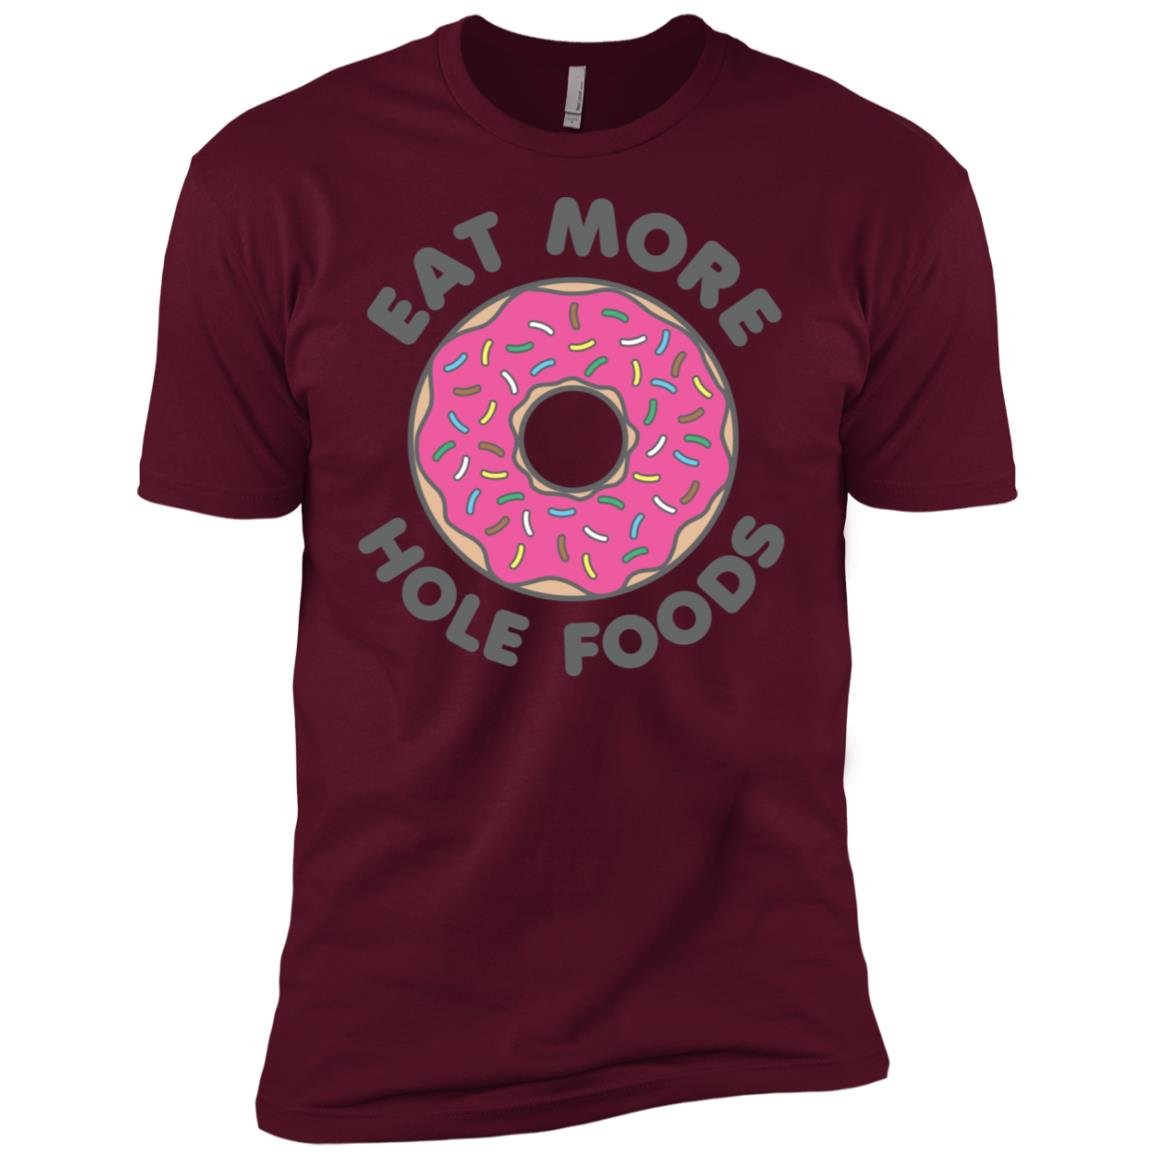 Eat More Hole Foods Donut Strawberry Sprinkles Men Short Sleeve T-Shirt